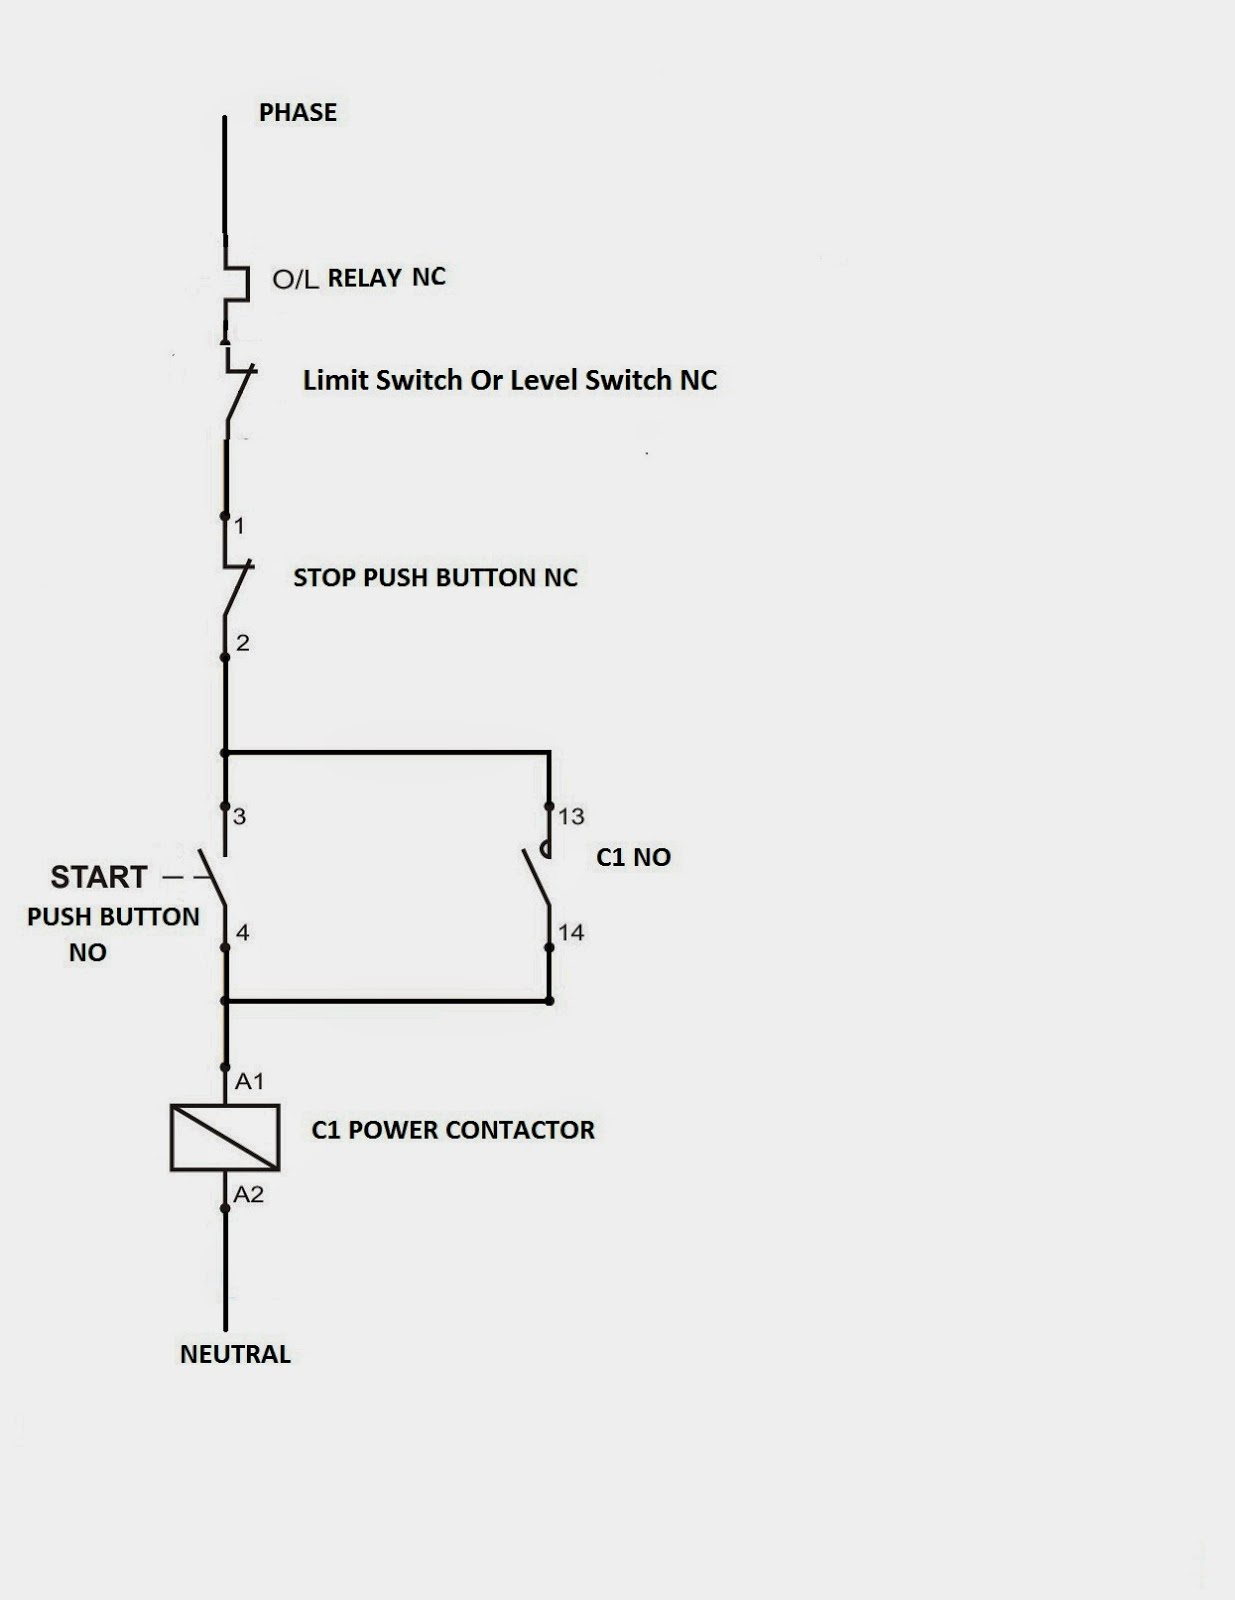 4 Wire Limit Switch Circuit Diagram Wiring Library Cord Plug Moreover Mercruiser Trim Dol With Level